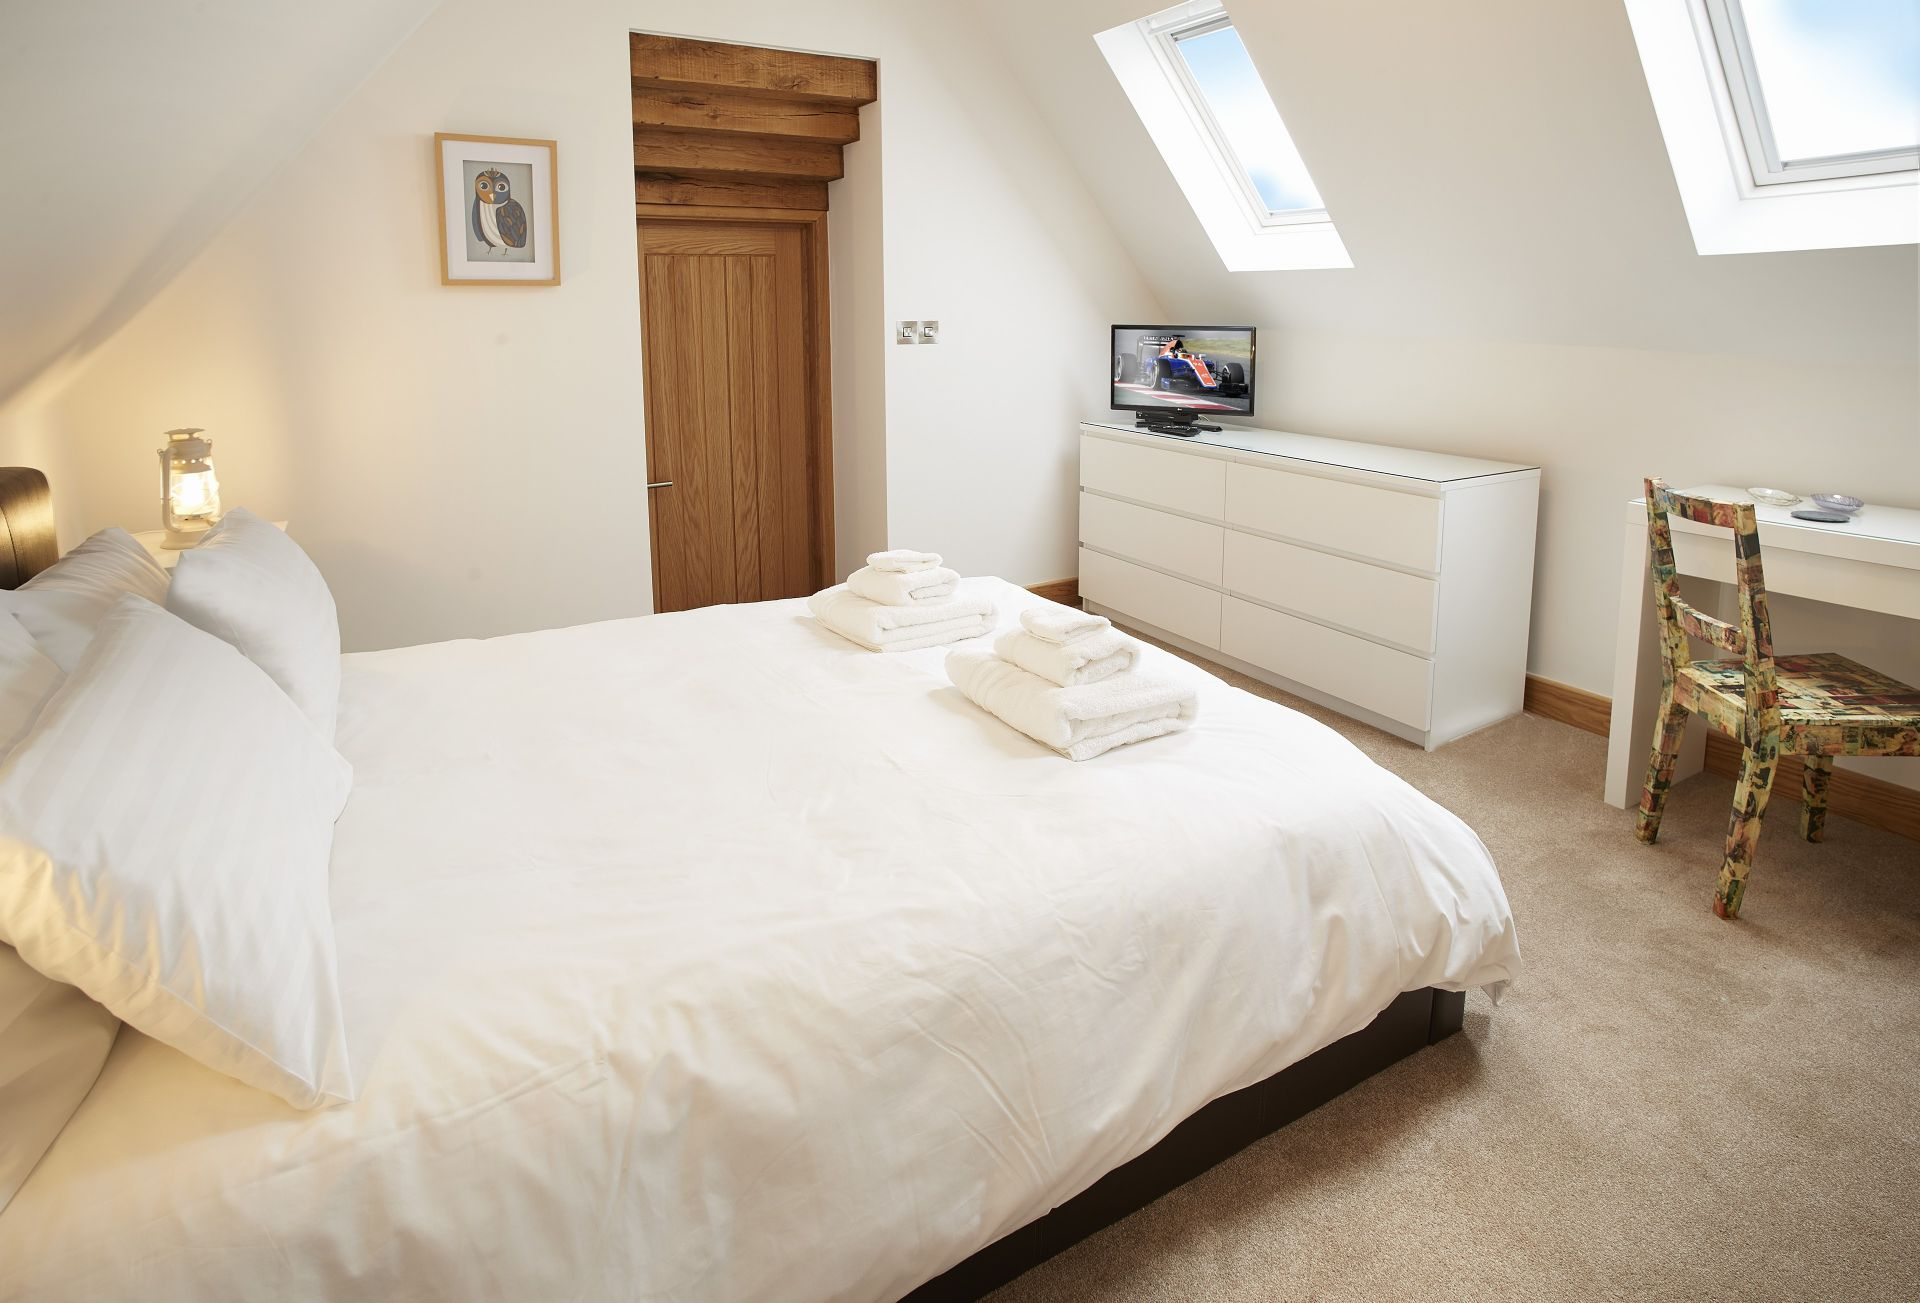 First floor: Master bedroom with 5' king-size bed and en-suite bathroom